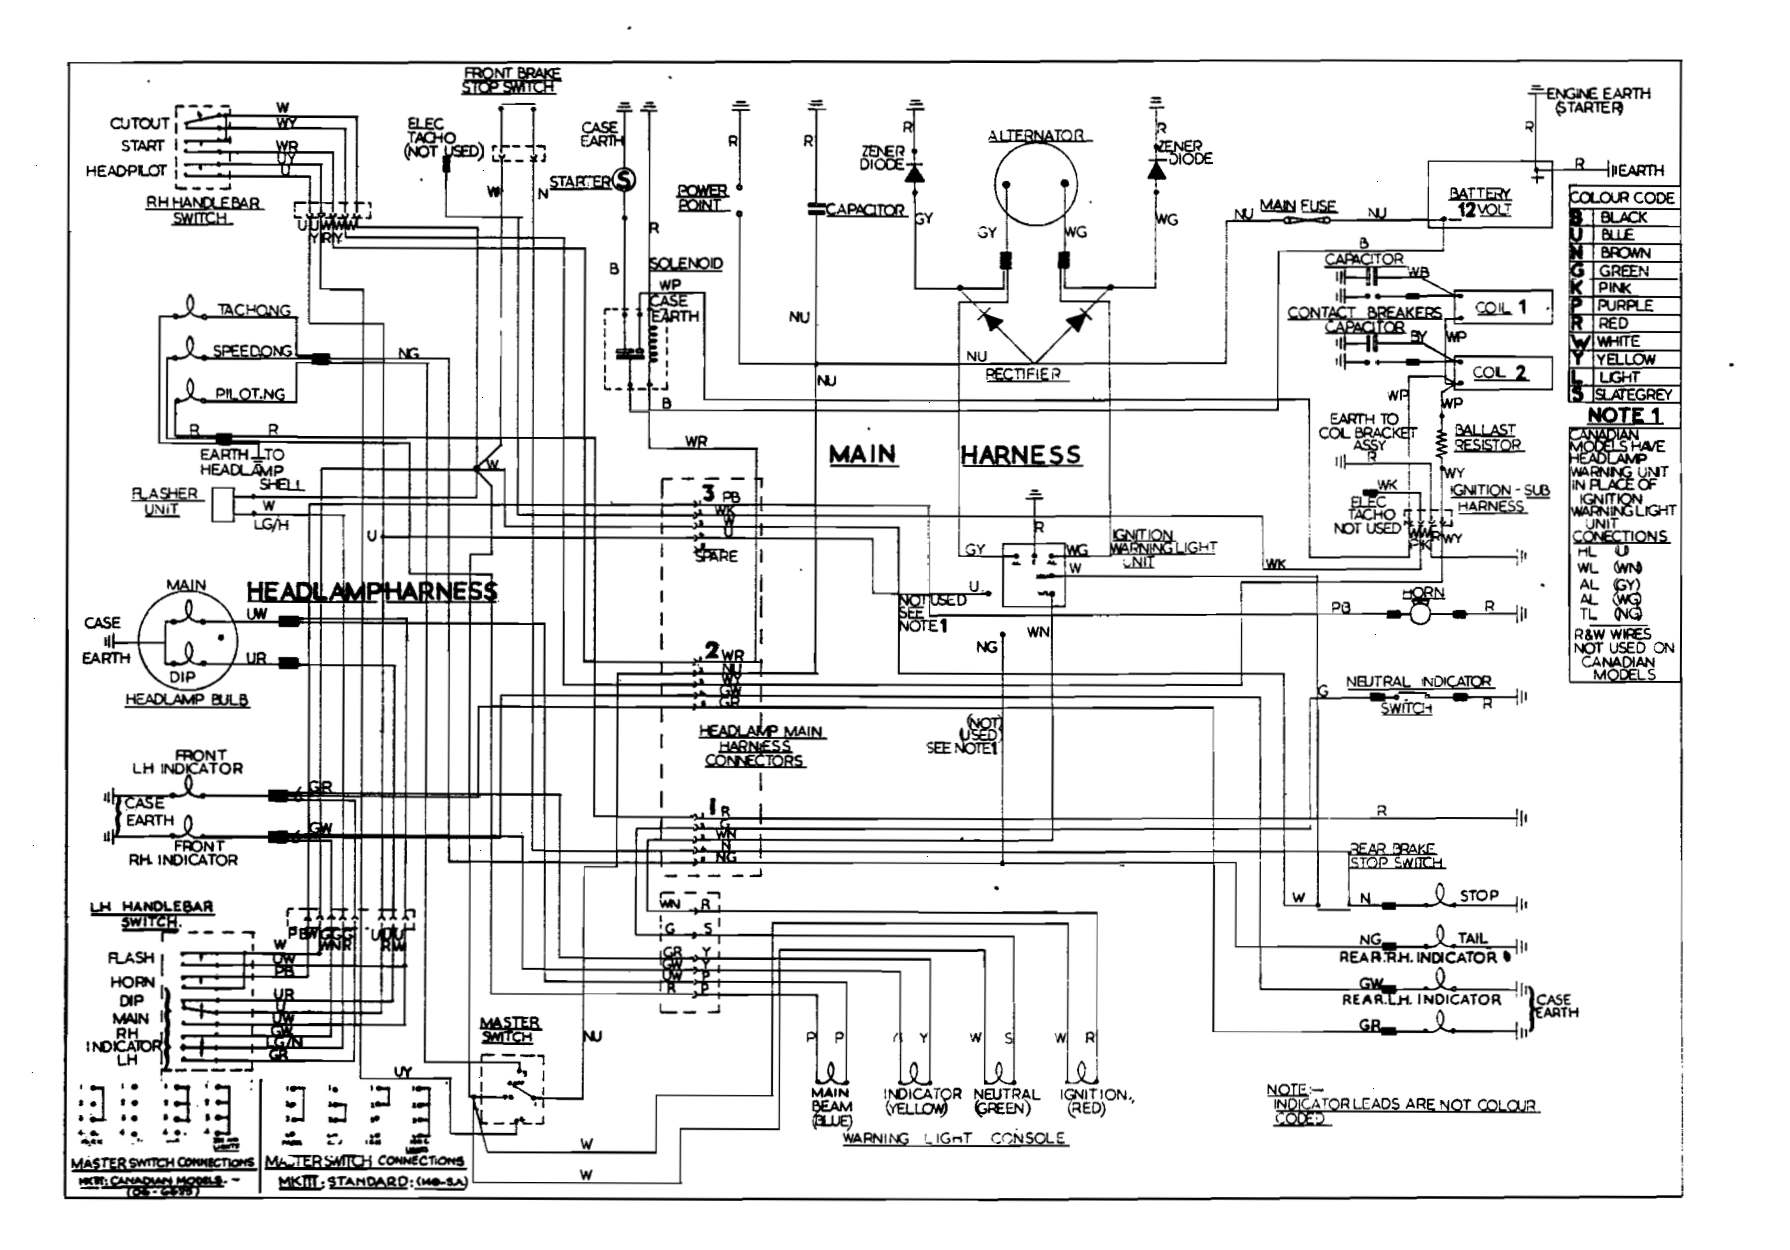 norton boyer mk3 wiring diagram auto electrical wiring diagram Trolling Motor Wiring Diagram related with norton boyer mk3 wiring diagram